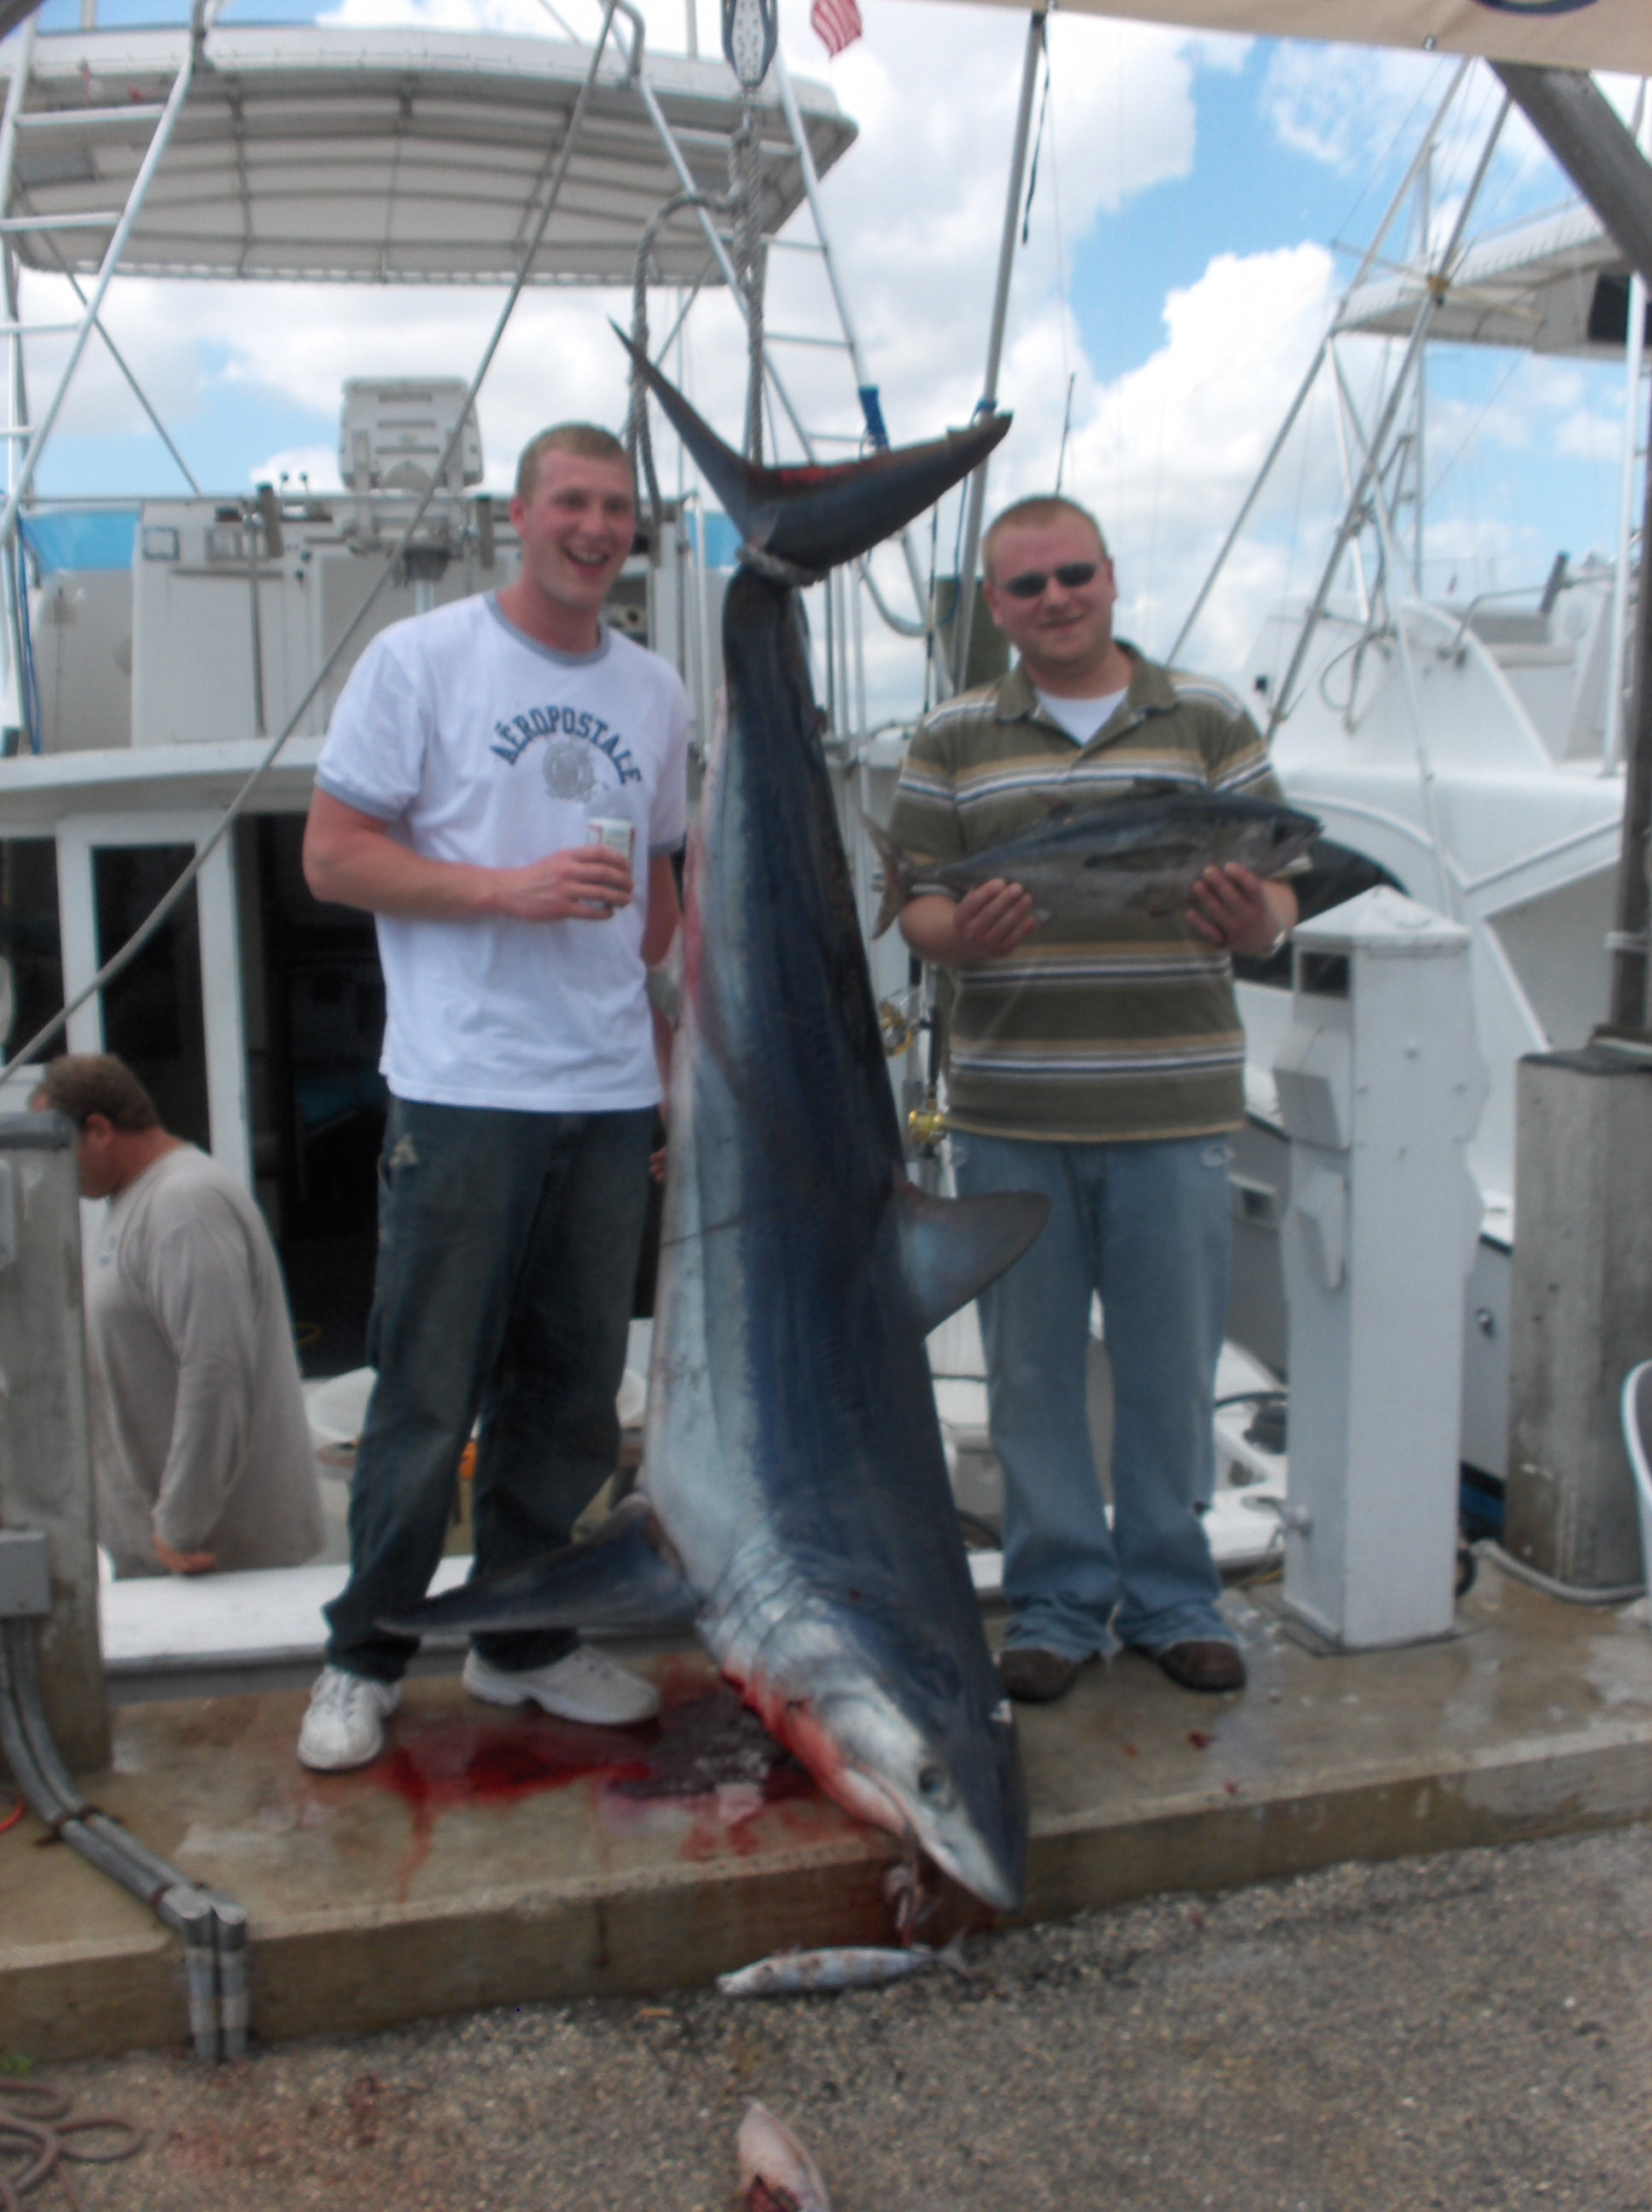 Ft lauderdale shark fishing charter for Fishing spots in fort lauderdale